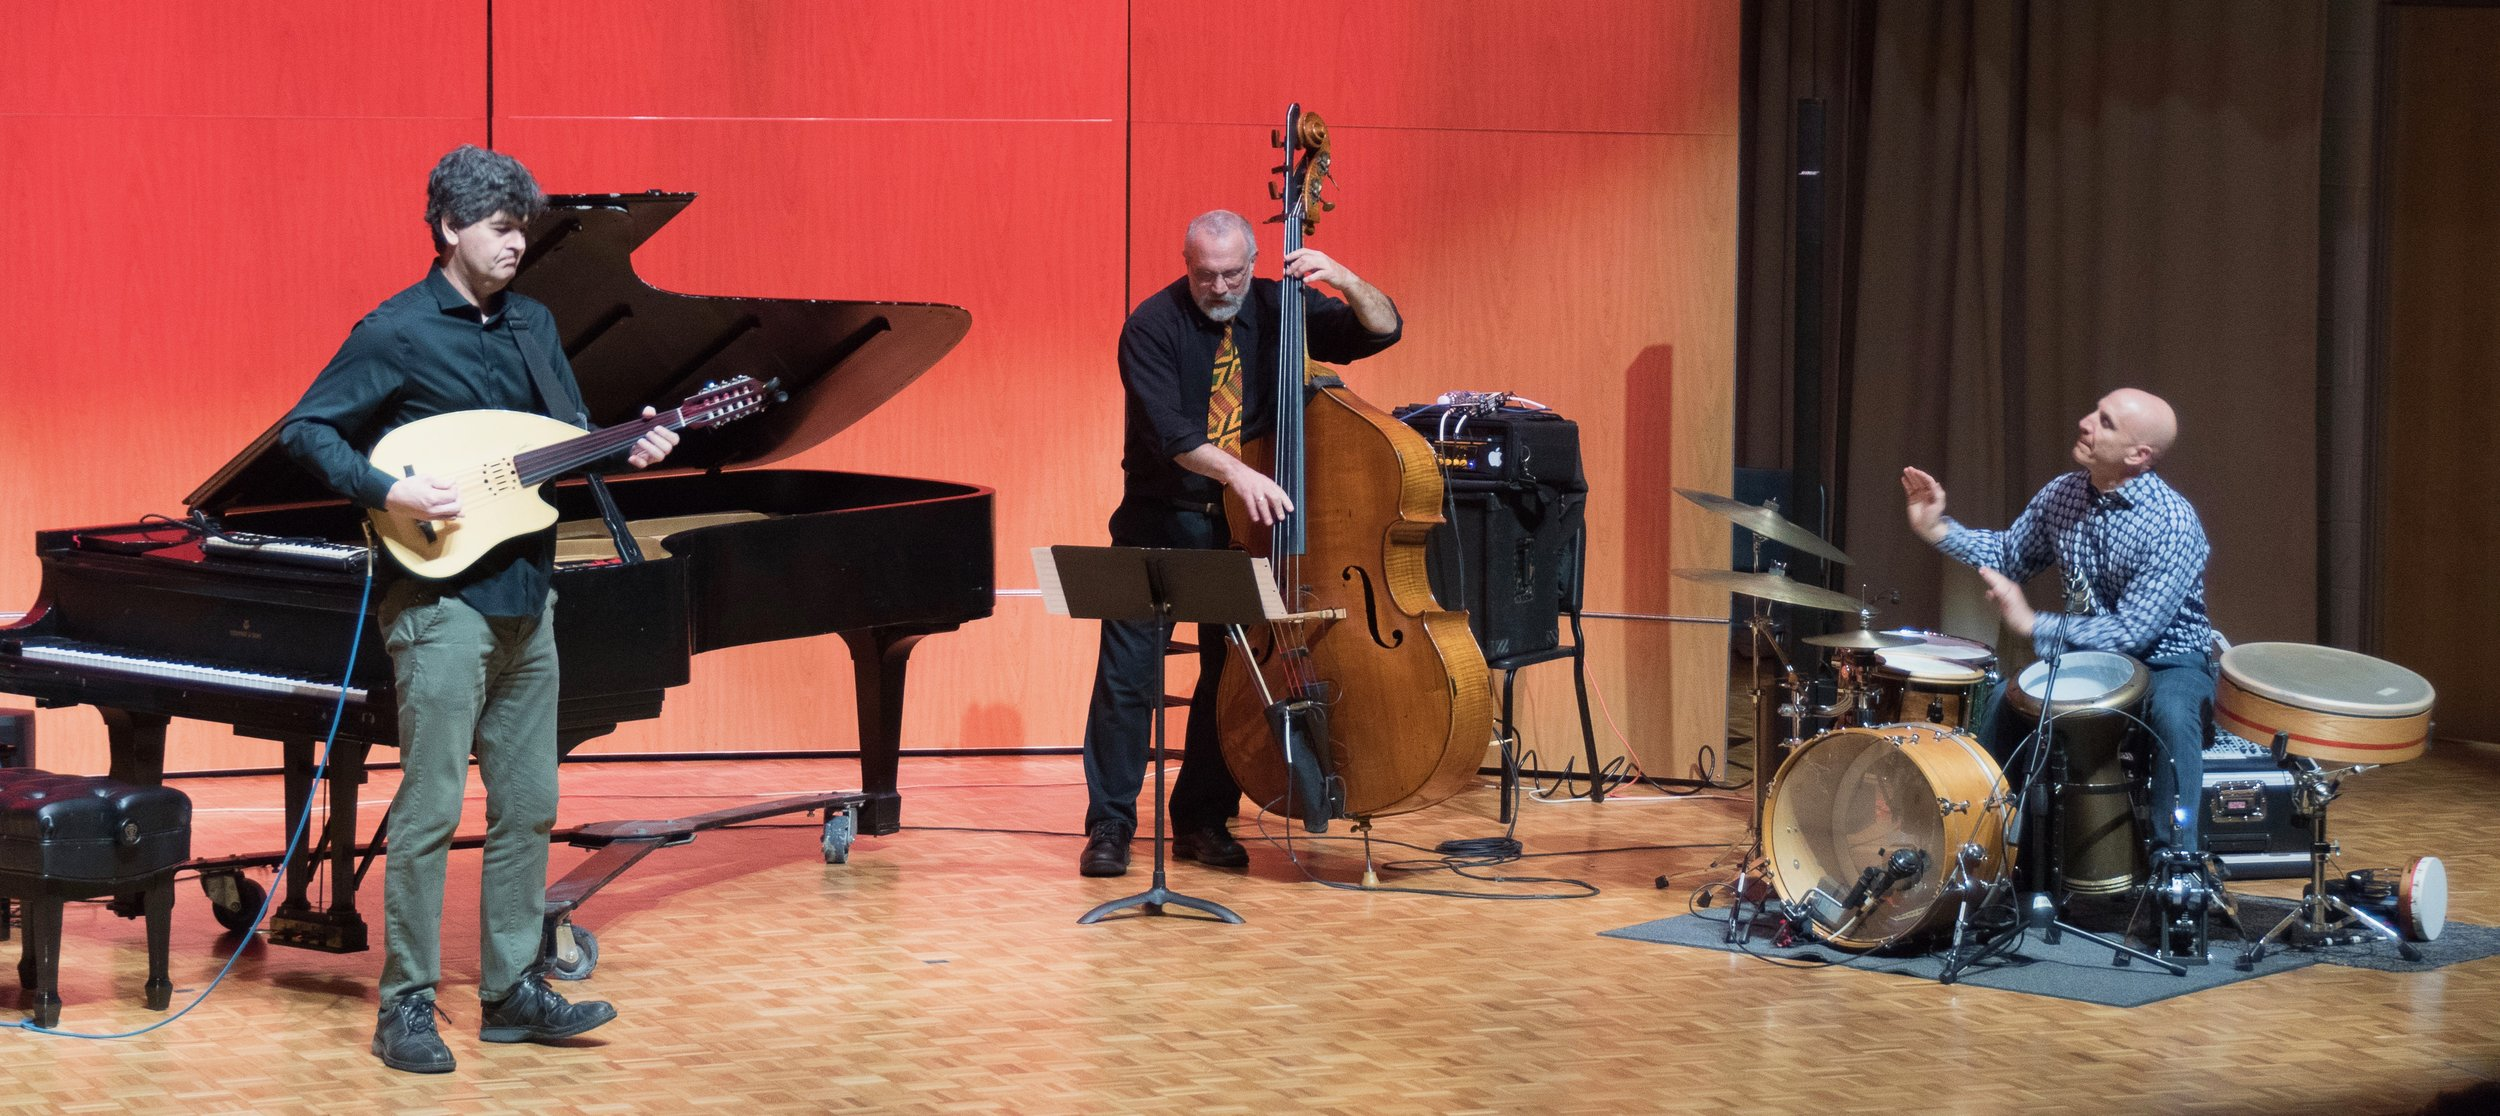 Free Planet Radio performance Western Carolina University, April 2019. Chris Rosser-electric oud, Eliot Wadopian-double bass, River Guerguerian-percussion.